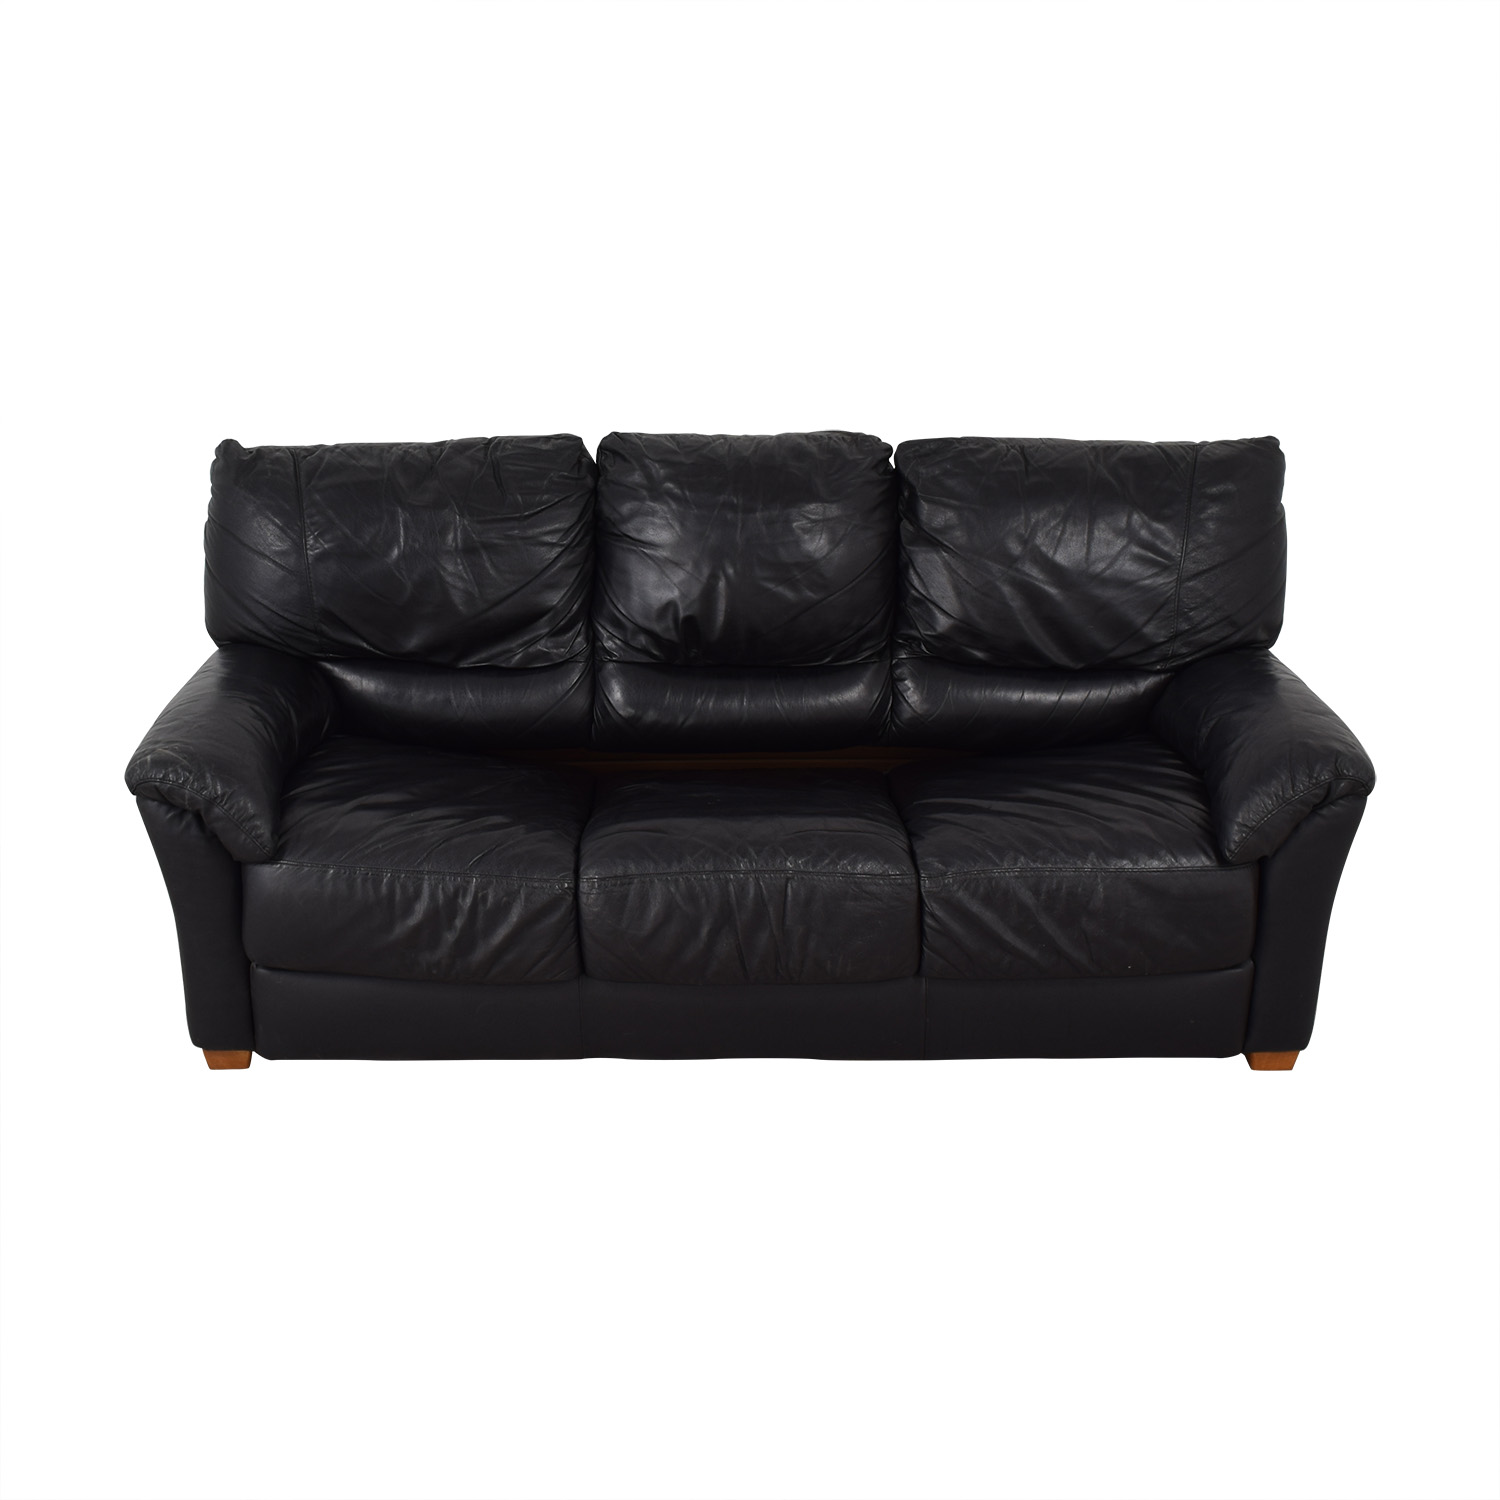 Black Three-Cushion Convertible Full Sleeper Sofa Classic Sofas